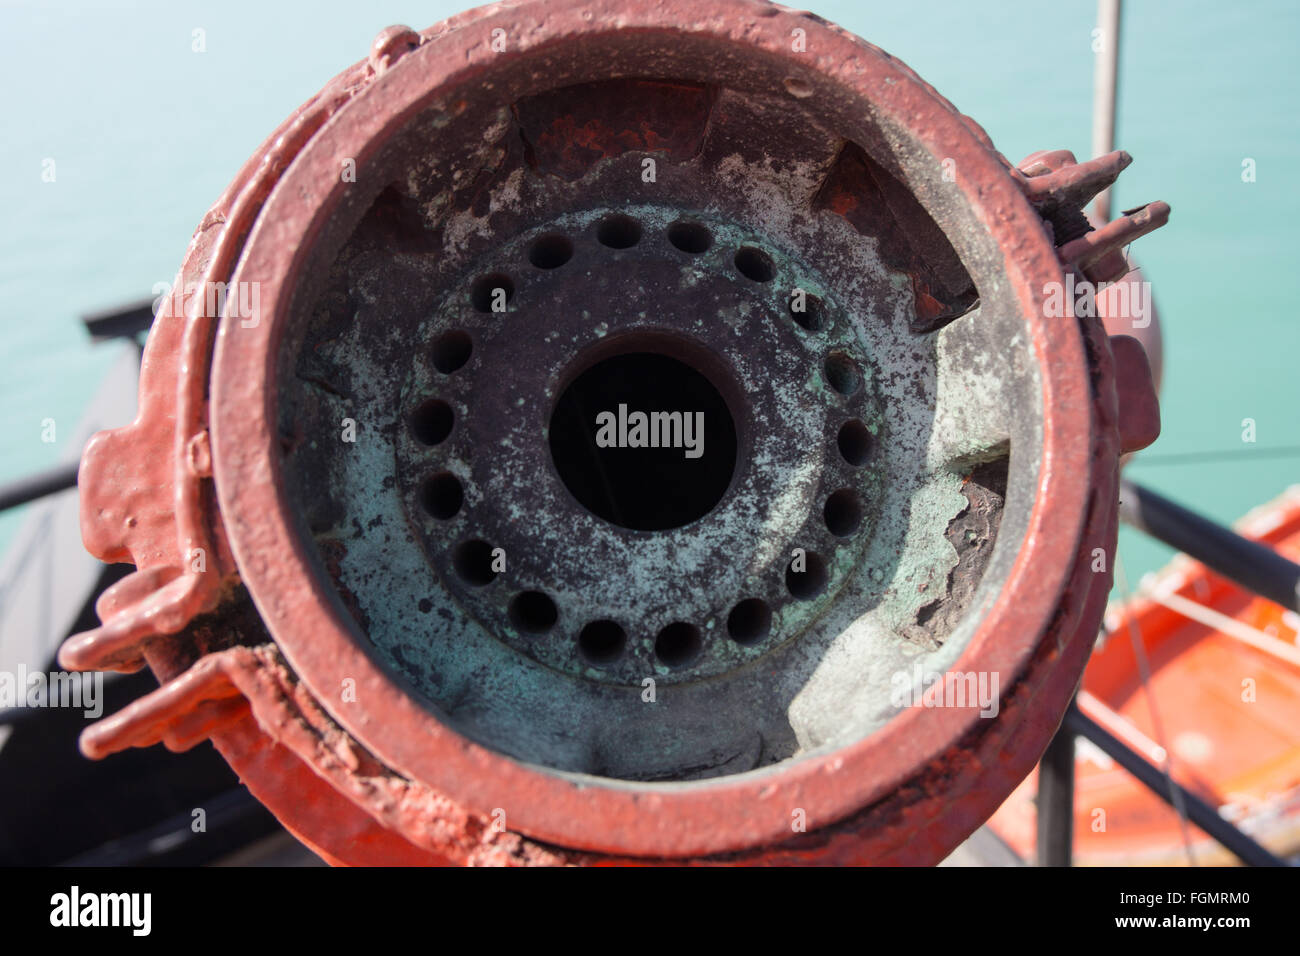 Detail of the inside of a water cannon for fire fighting. - Stock Image